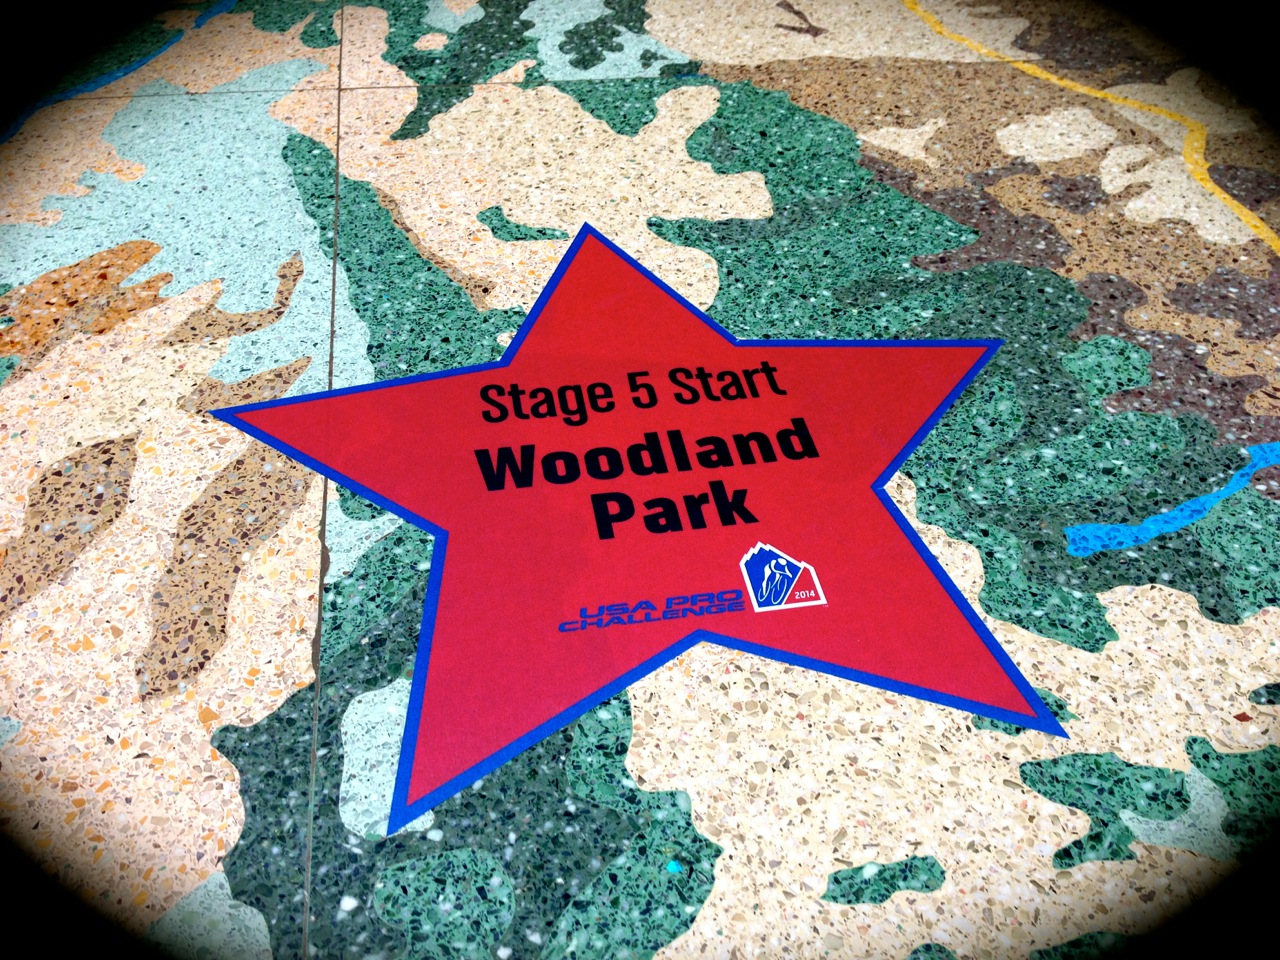 Stage 5 (Star) Woodland Park